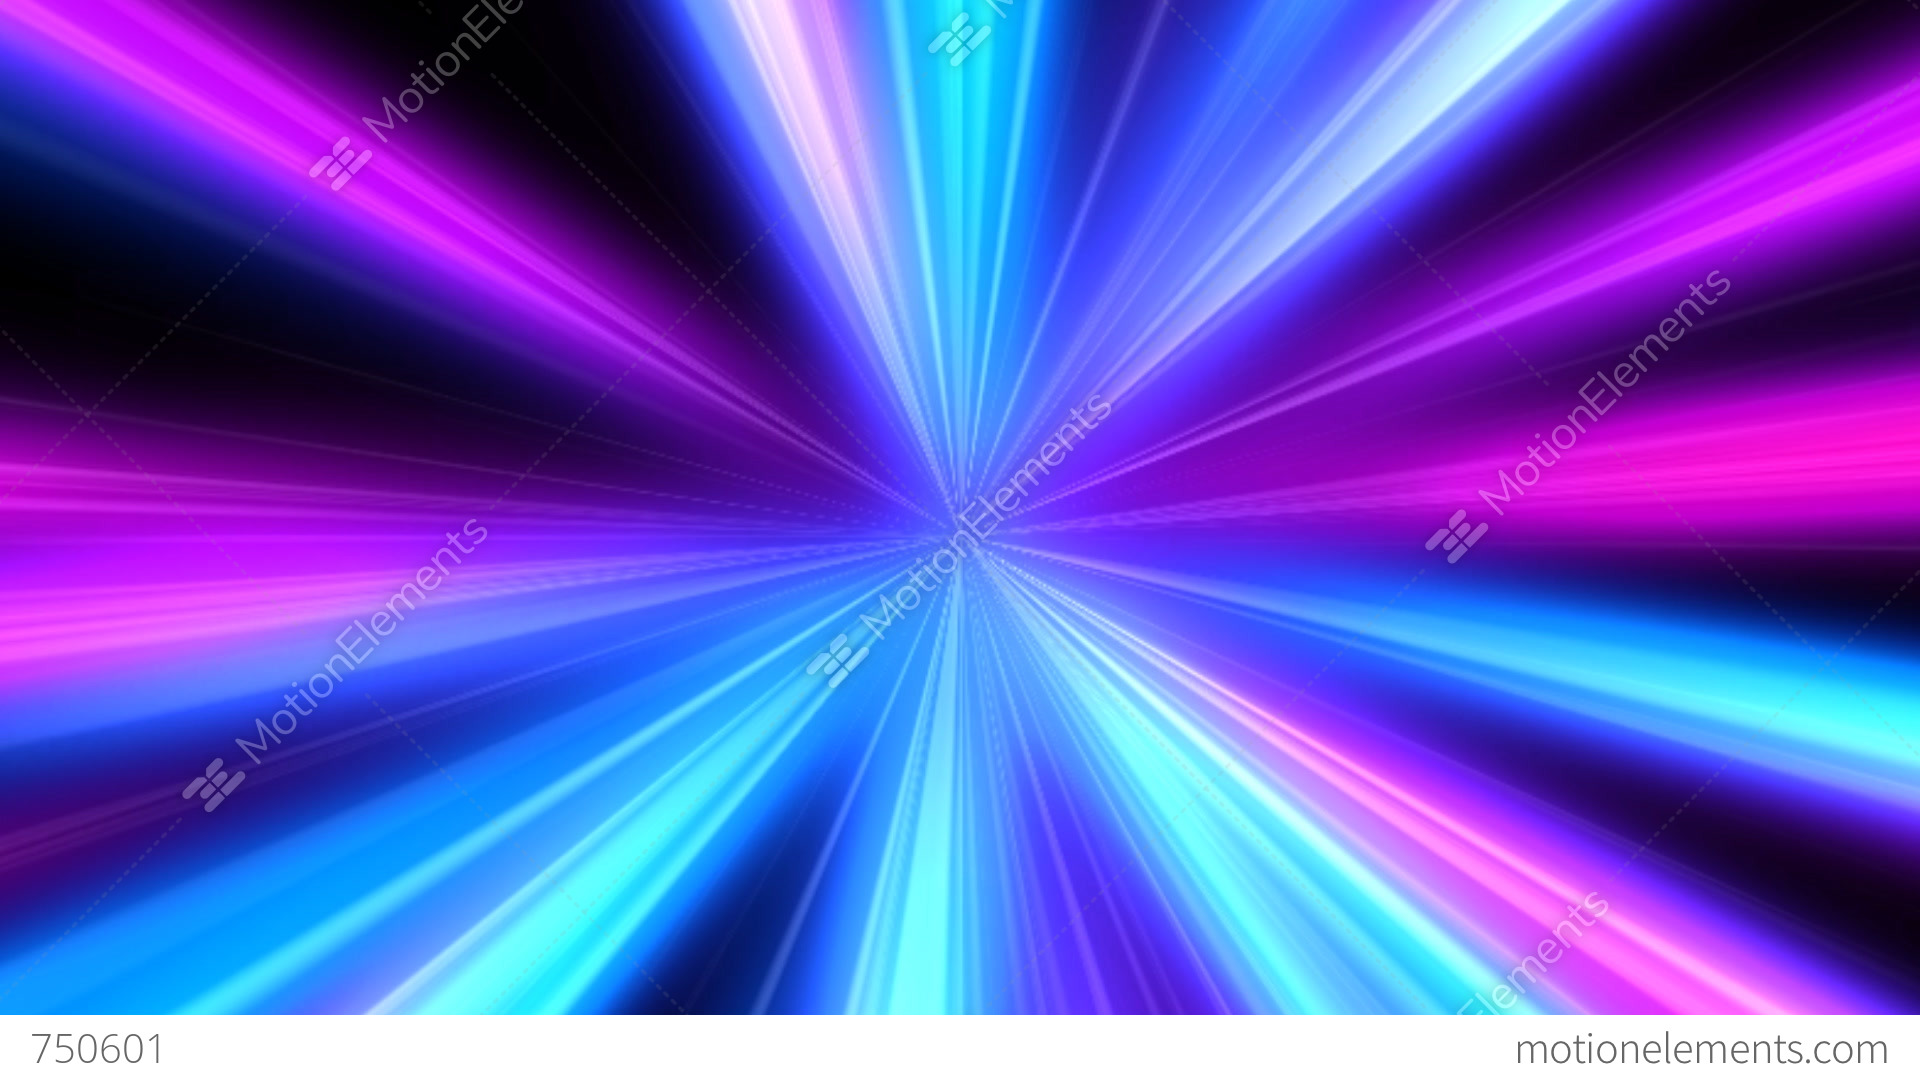 Animated Disco Lights Background - 124.0KB